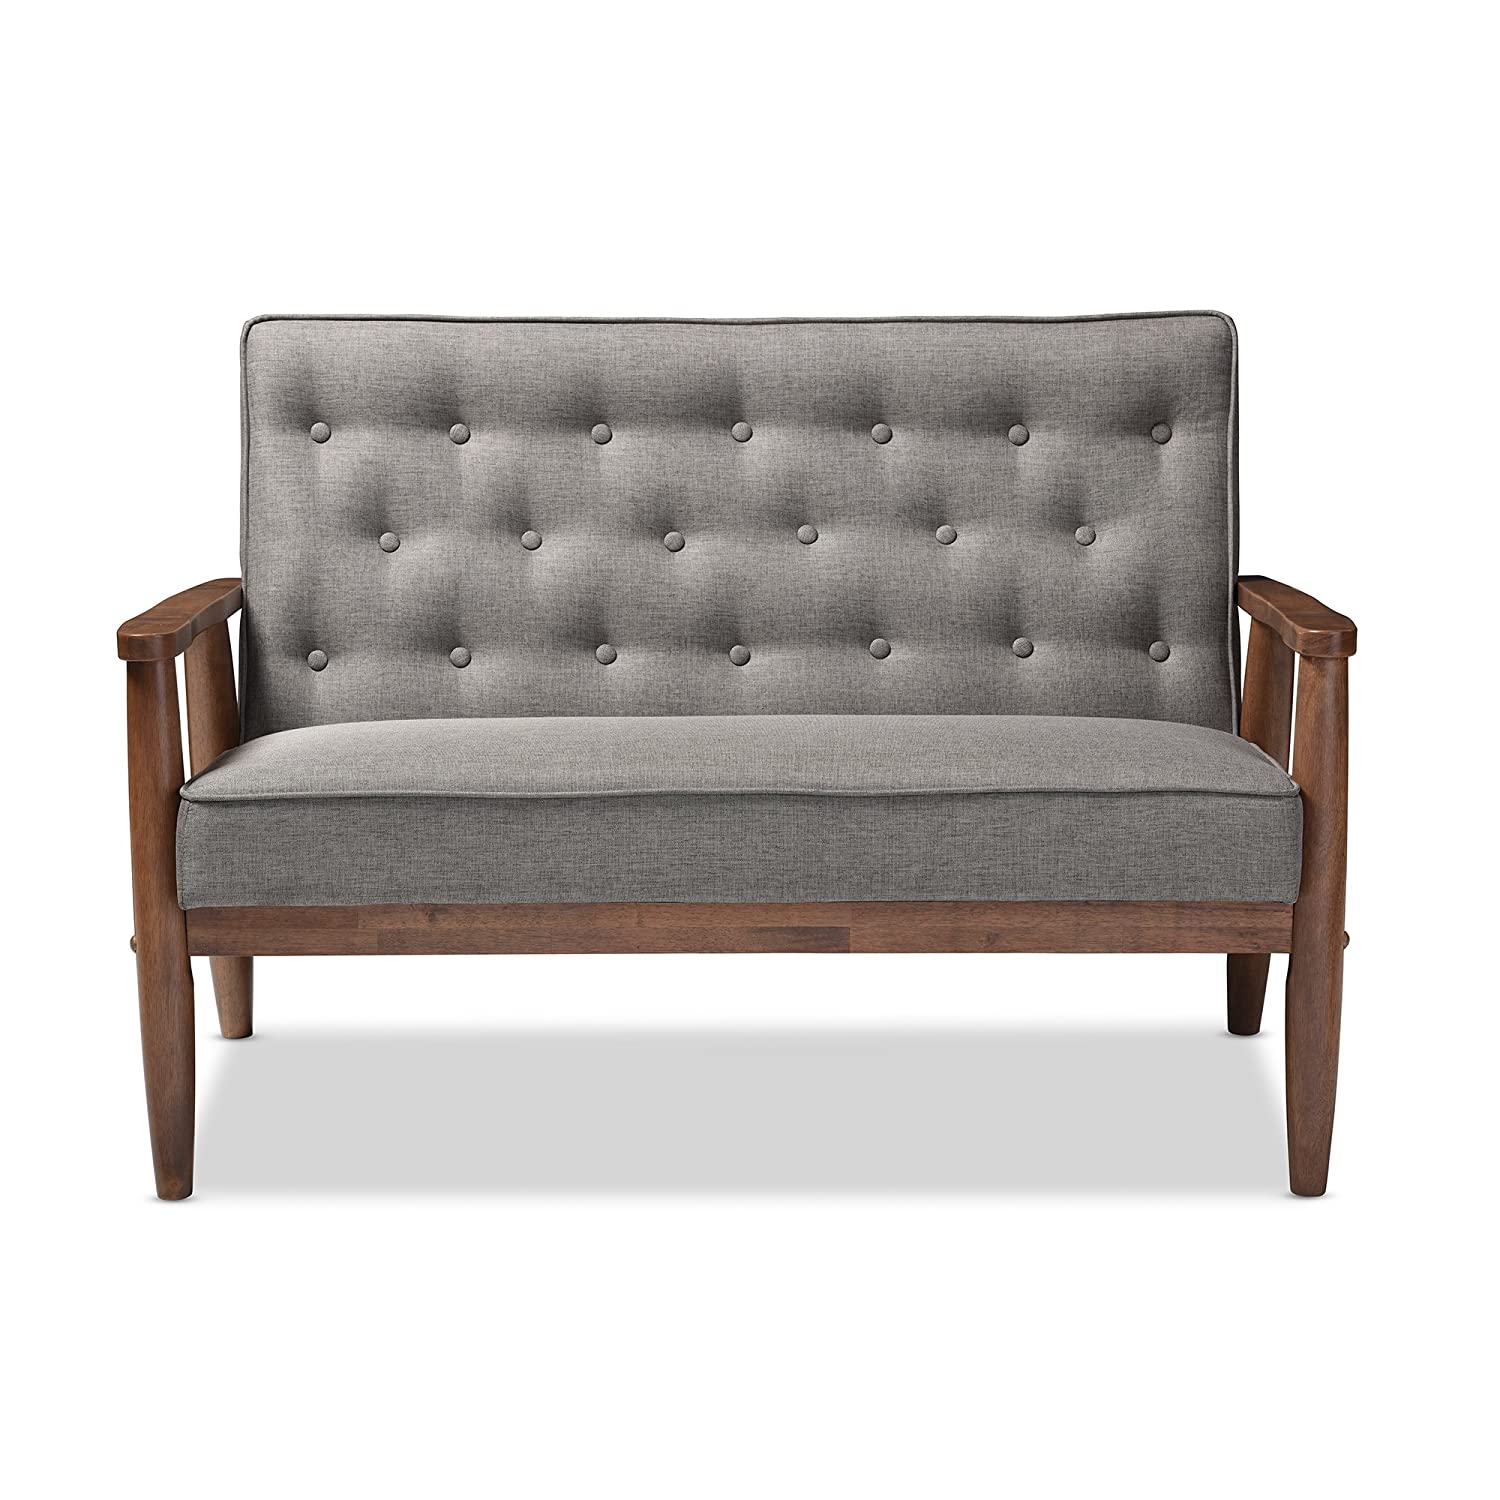 vintage sofas gray retro six espresso ave loveseats dark furinno legs loveseat sofa laguna fabric p script the home and